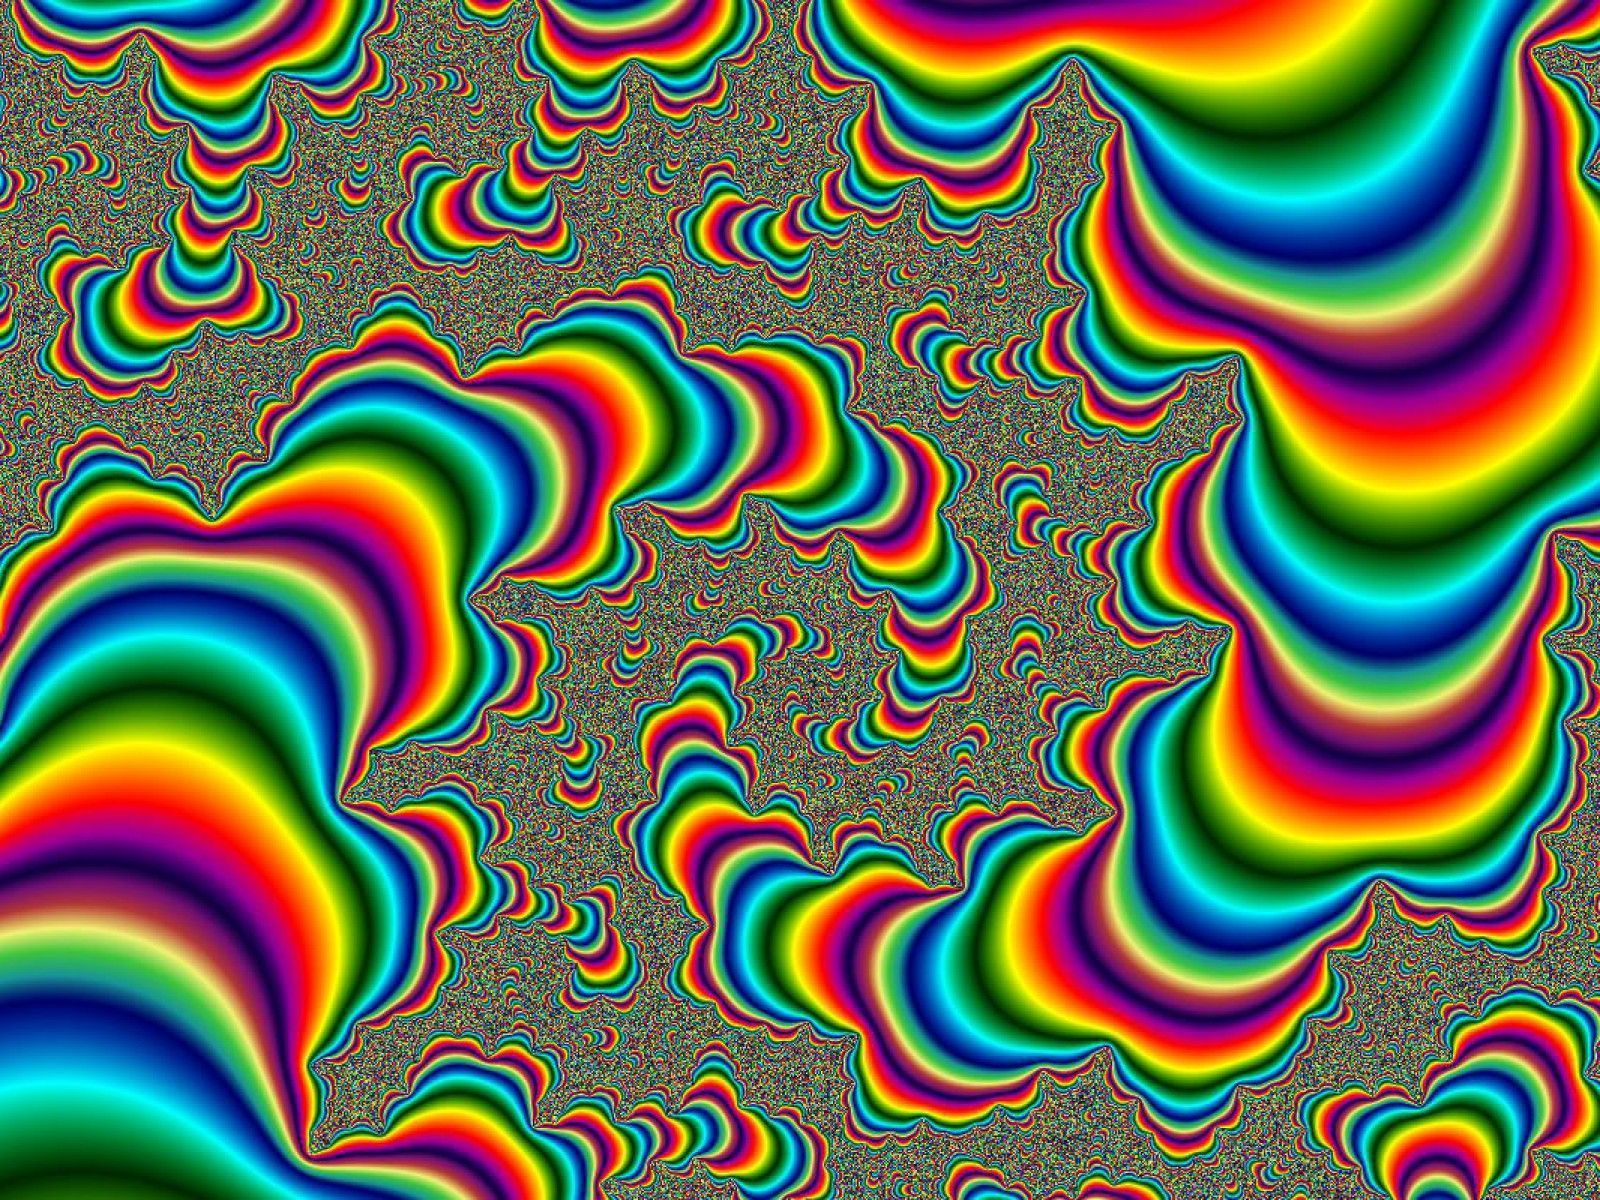 Moving Illusion Backgrounds Trippy Wallpaper Moving Wallpaper Hd Moving Wallpapers